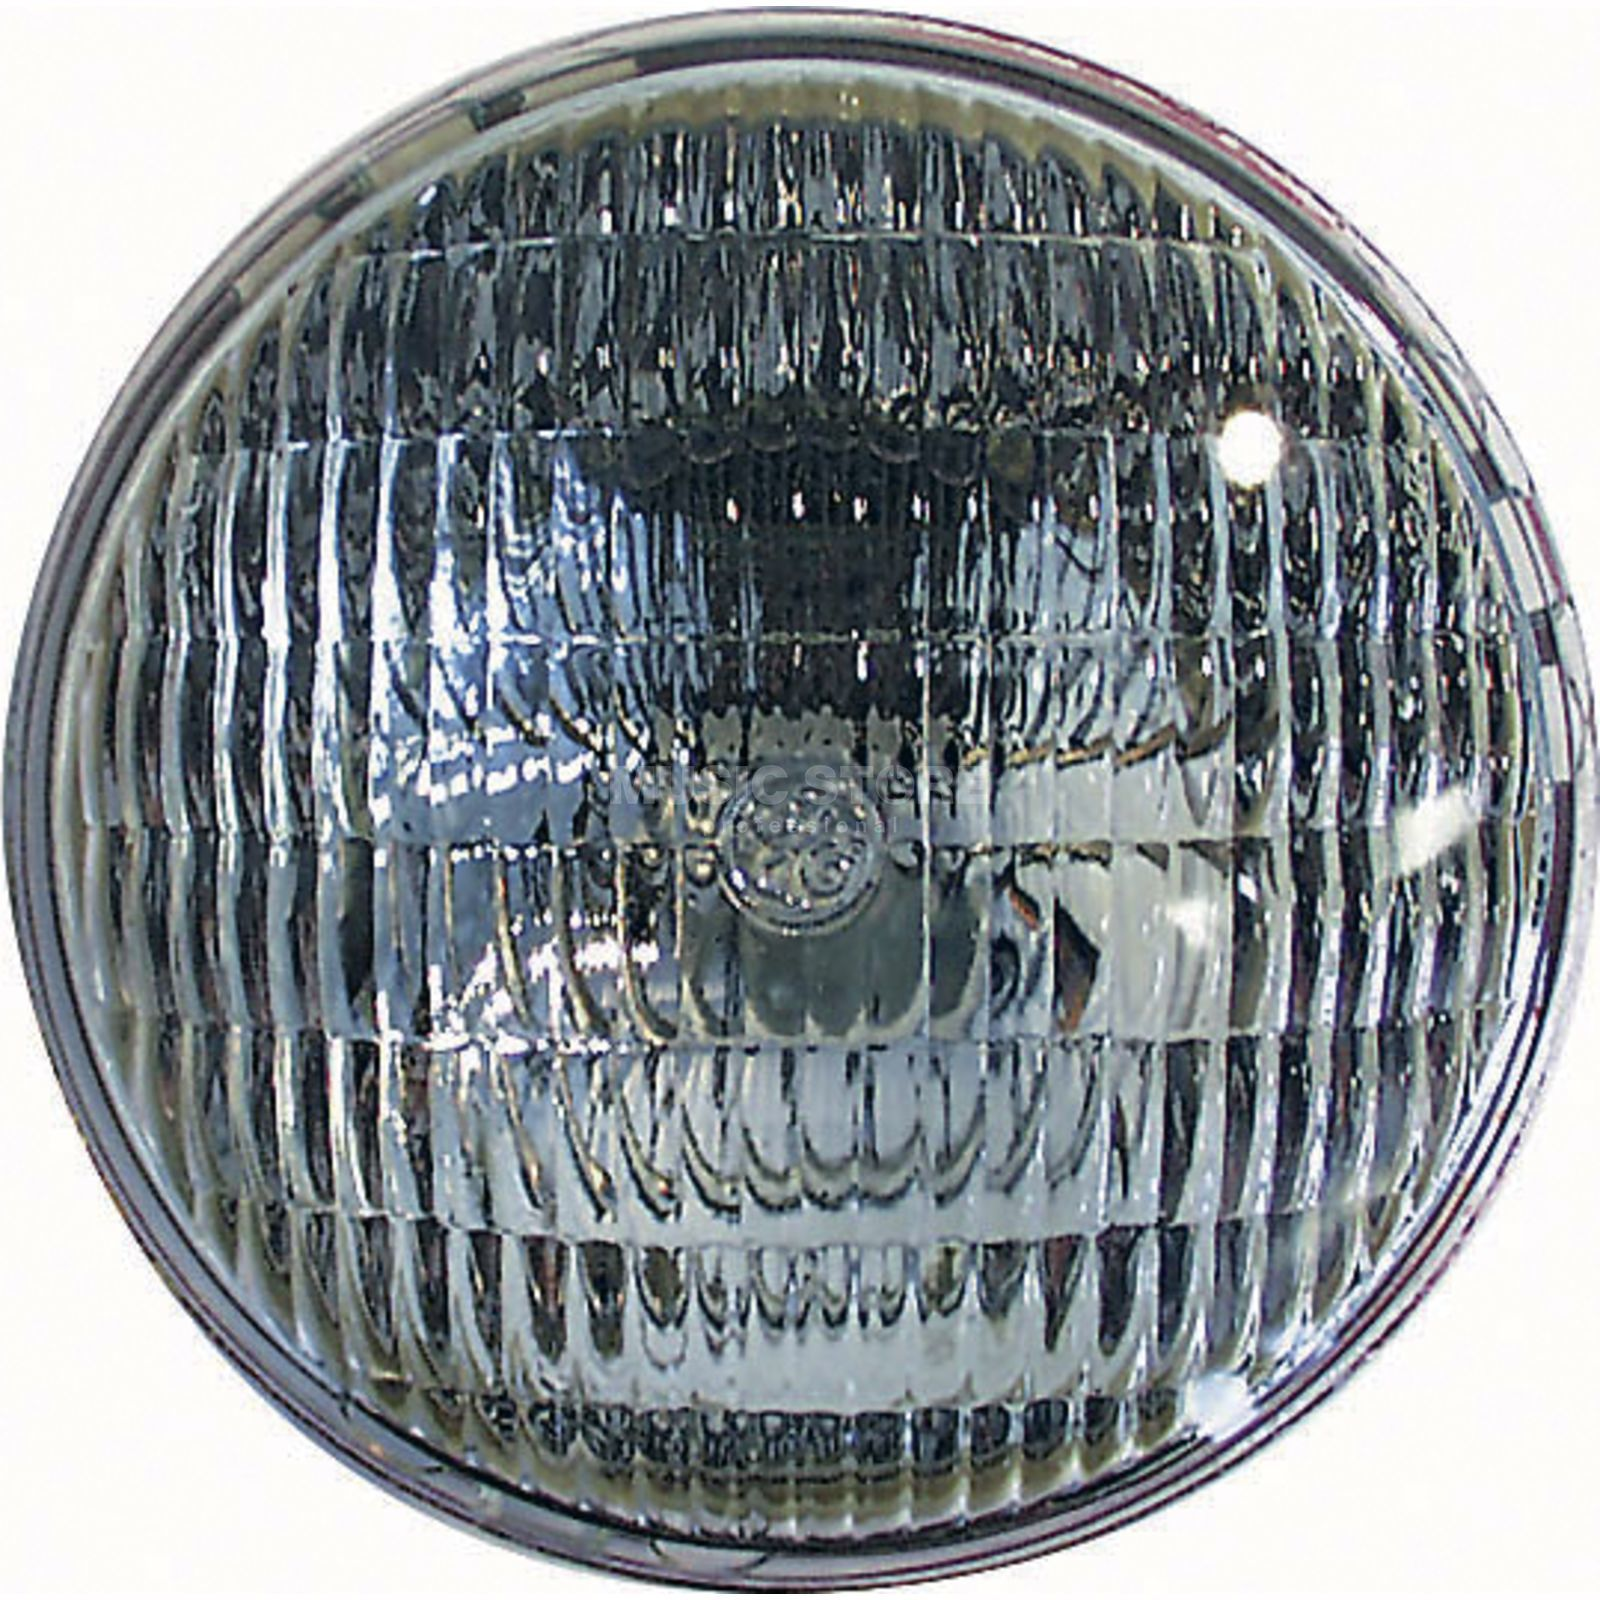 GE Lighting Par 56 300W MFL ca. 2000h Produktbild